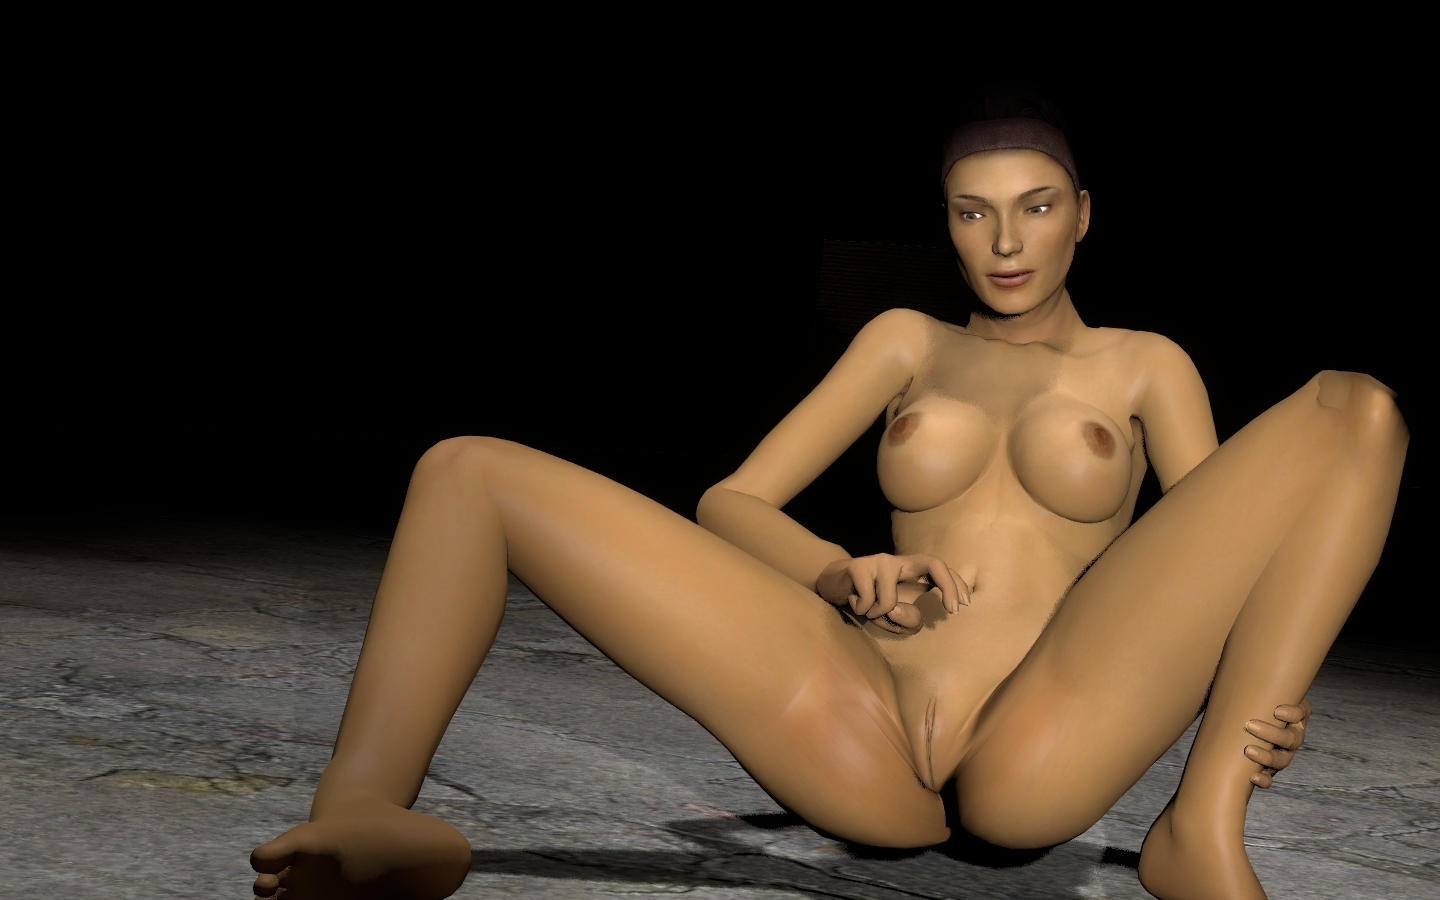 Hl2 alyx vance nude animated sex porno photo